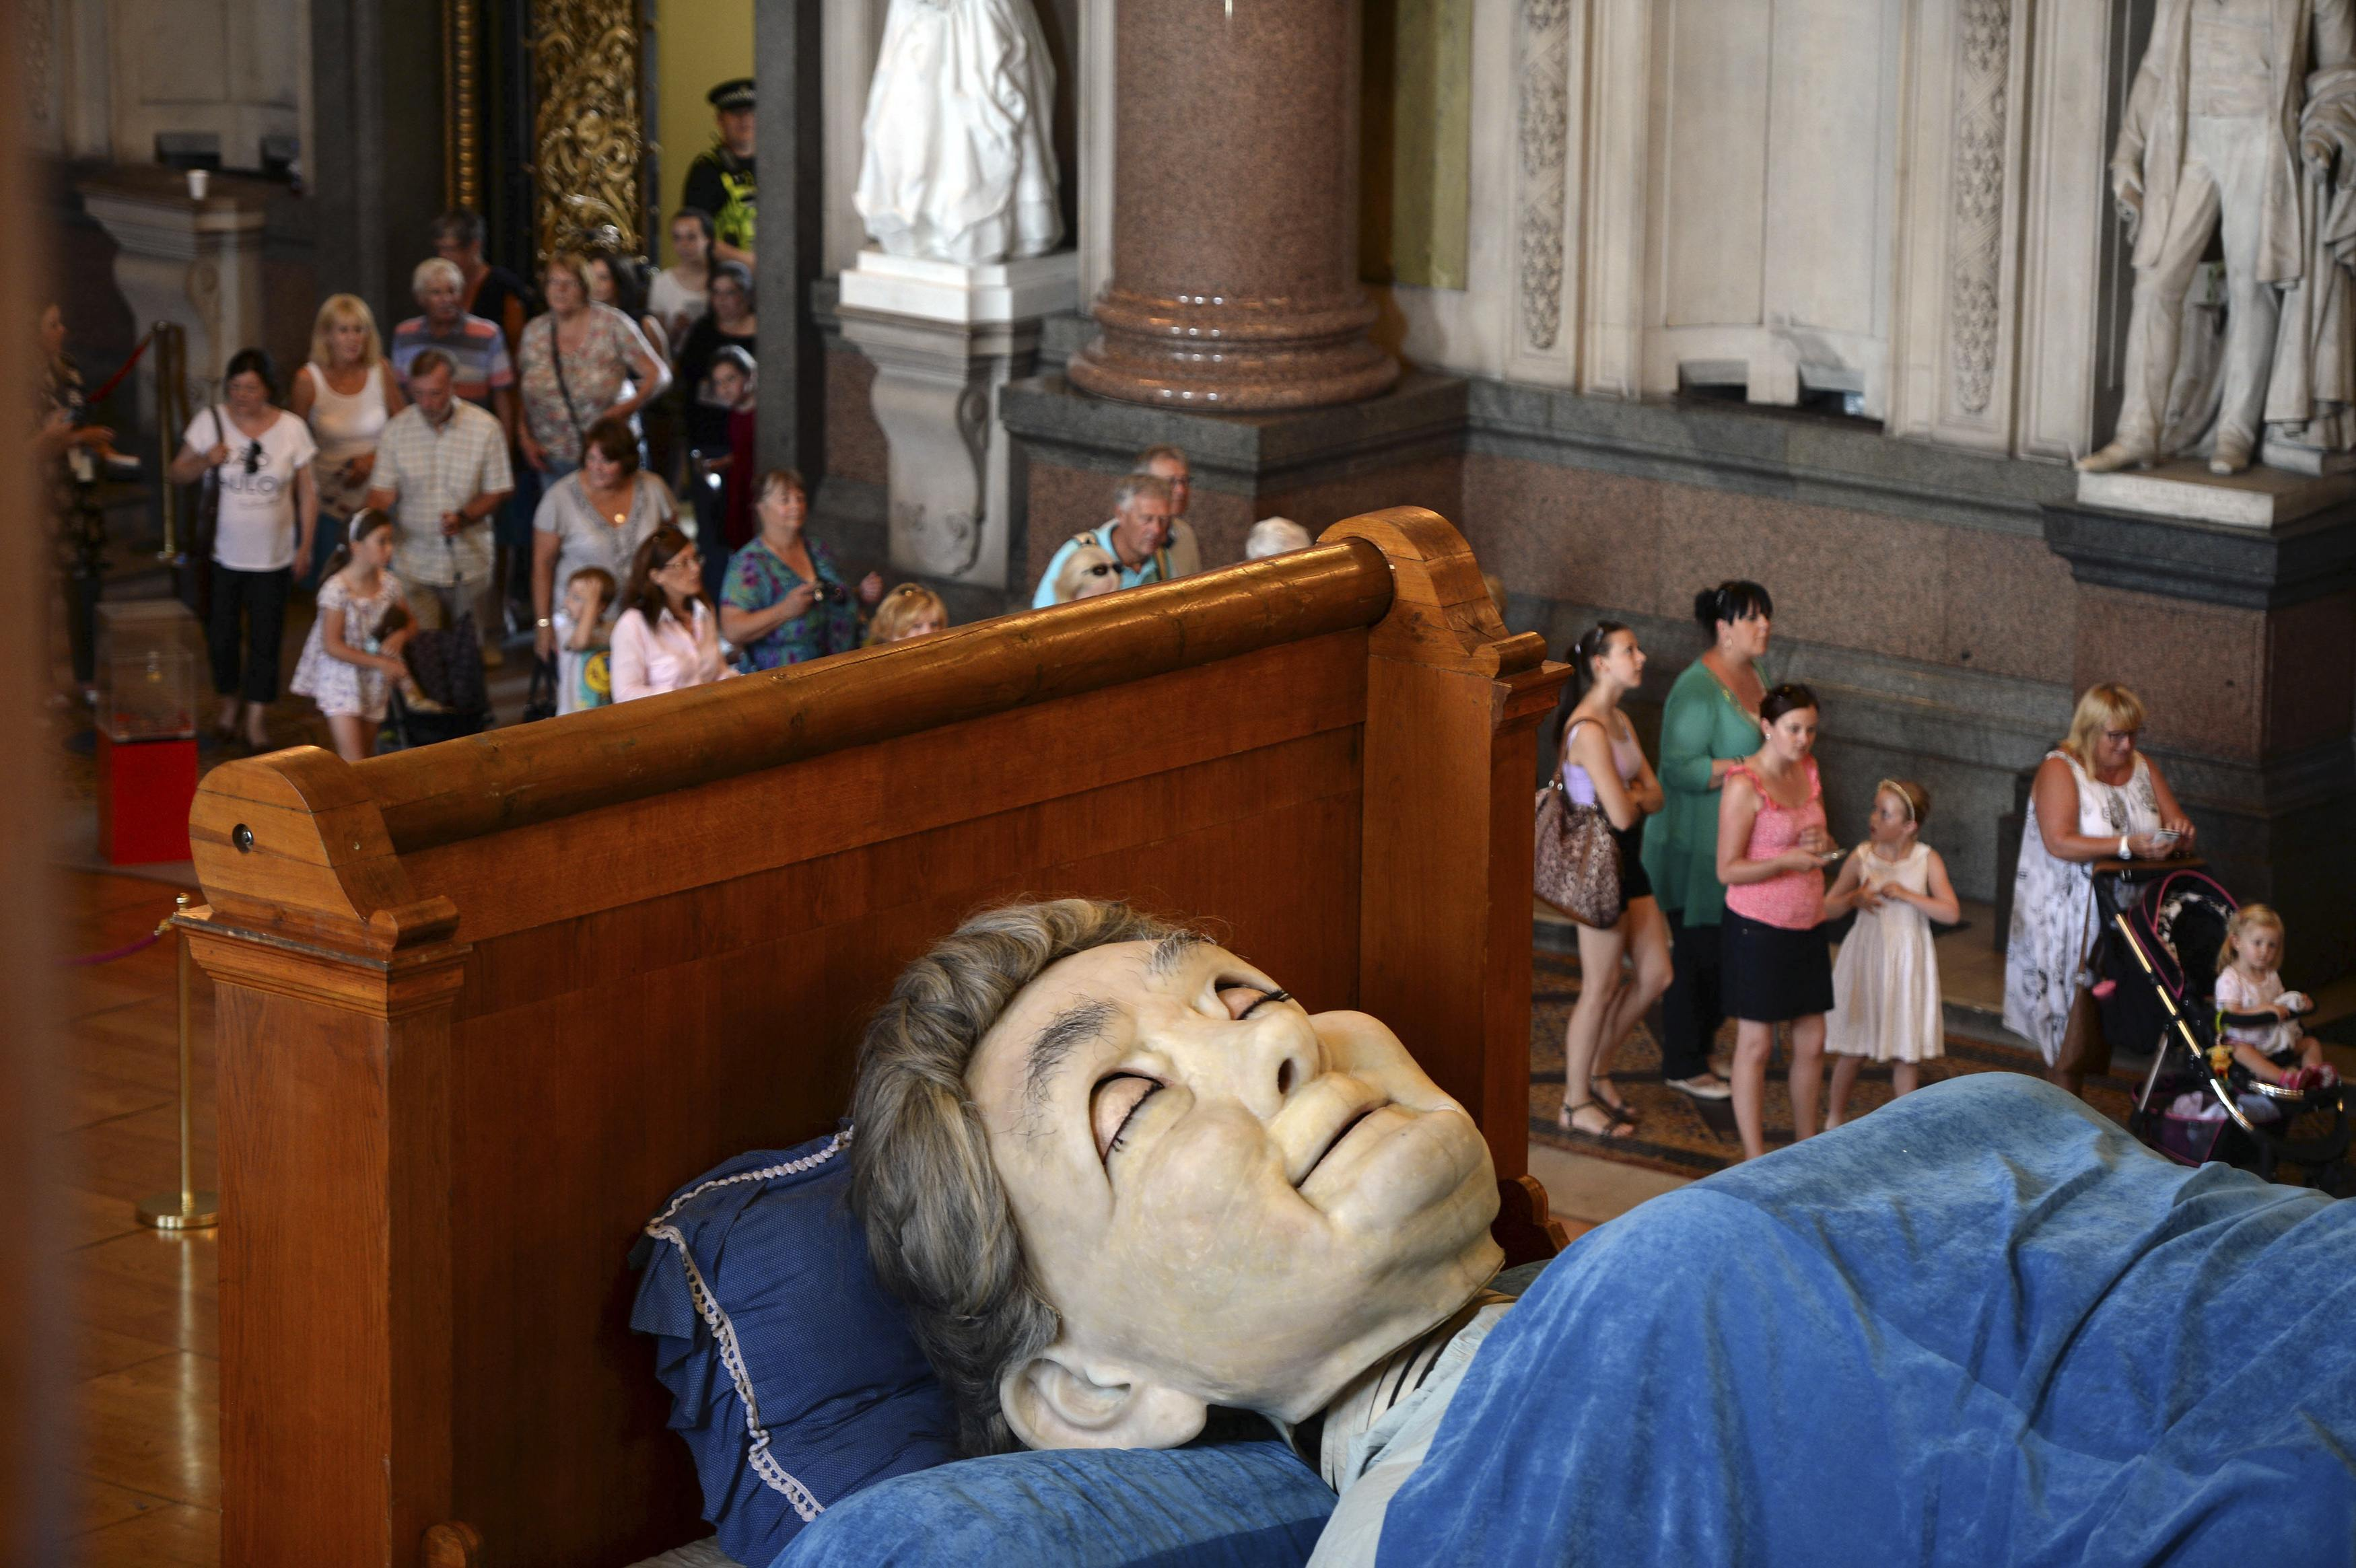 Visitors look at a giant puppet of a grandmother sleeping on a bed inside St George's Hall in Liverpool